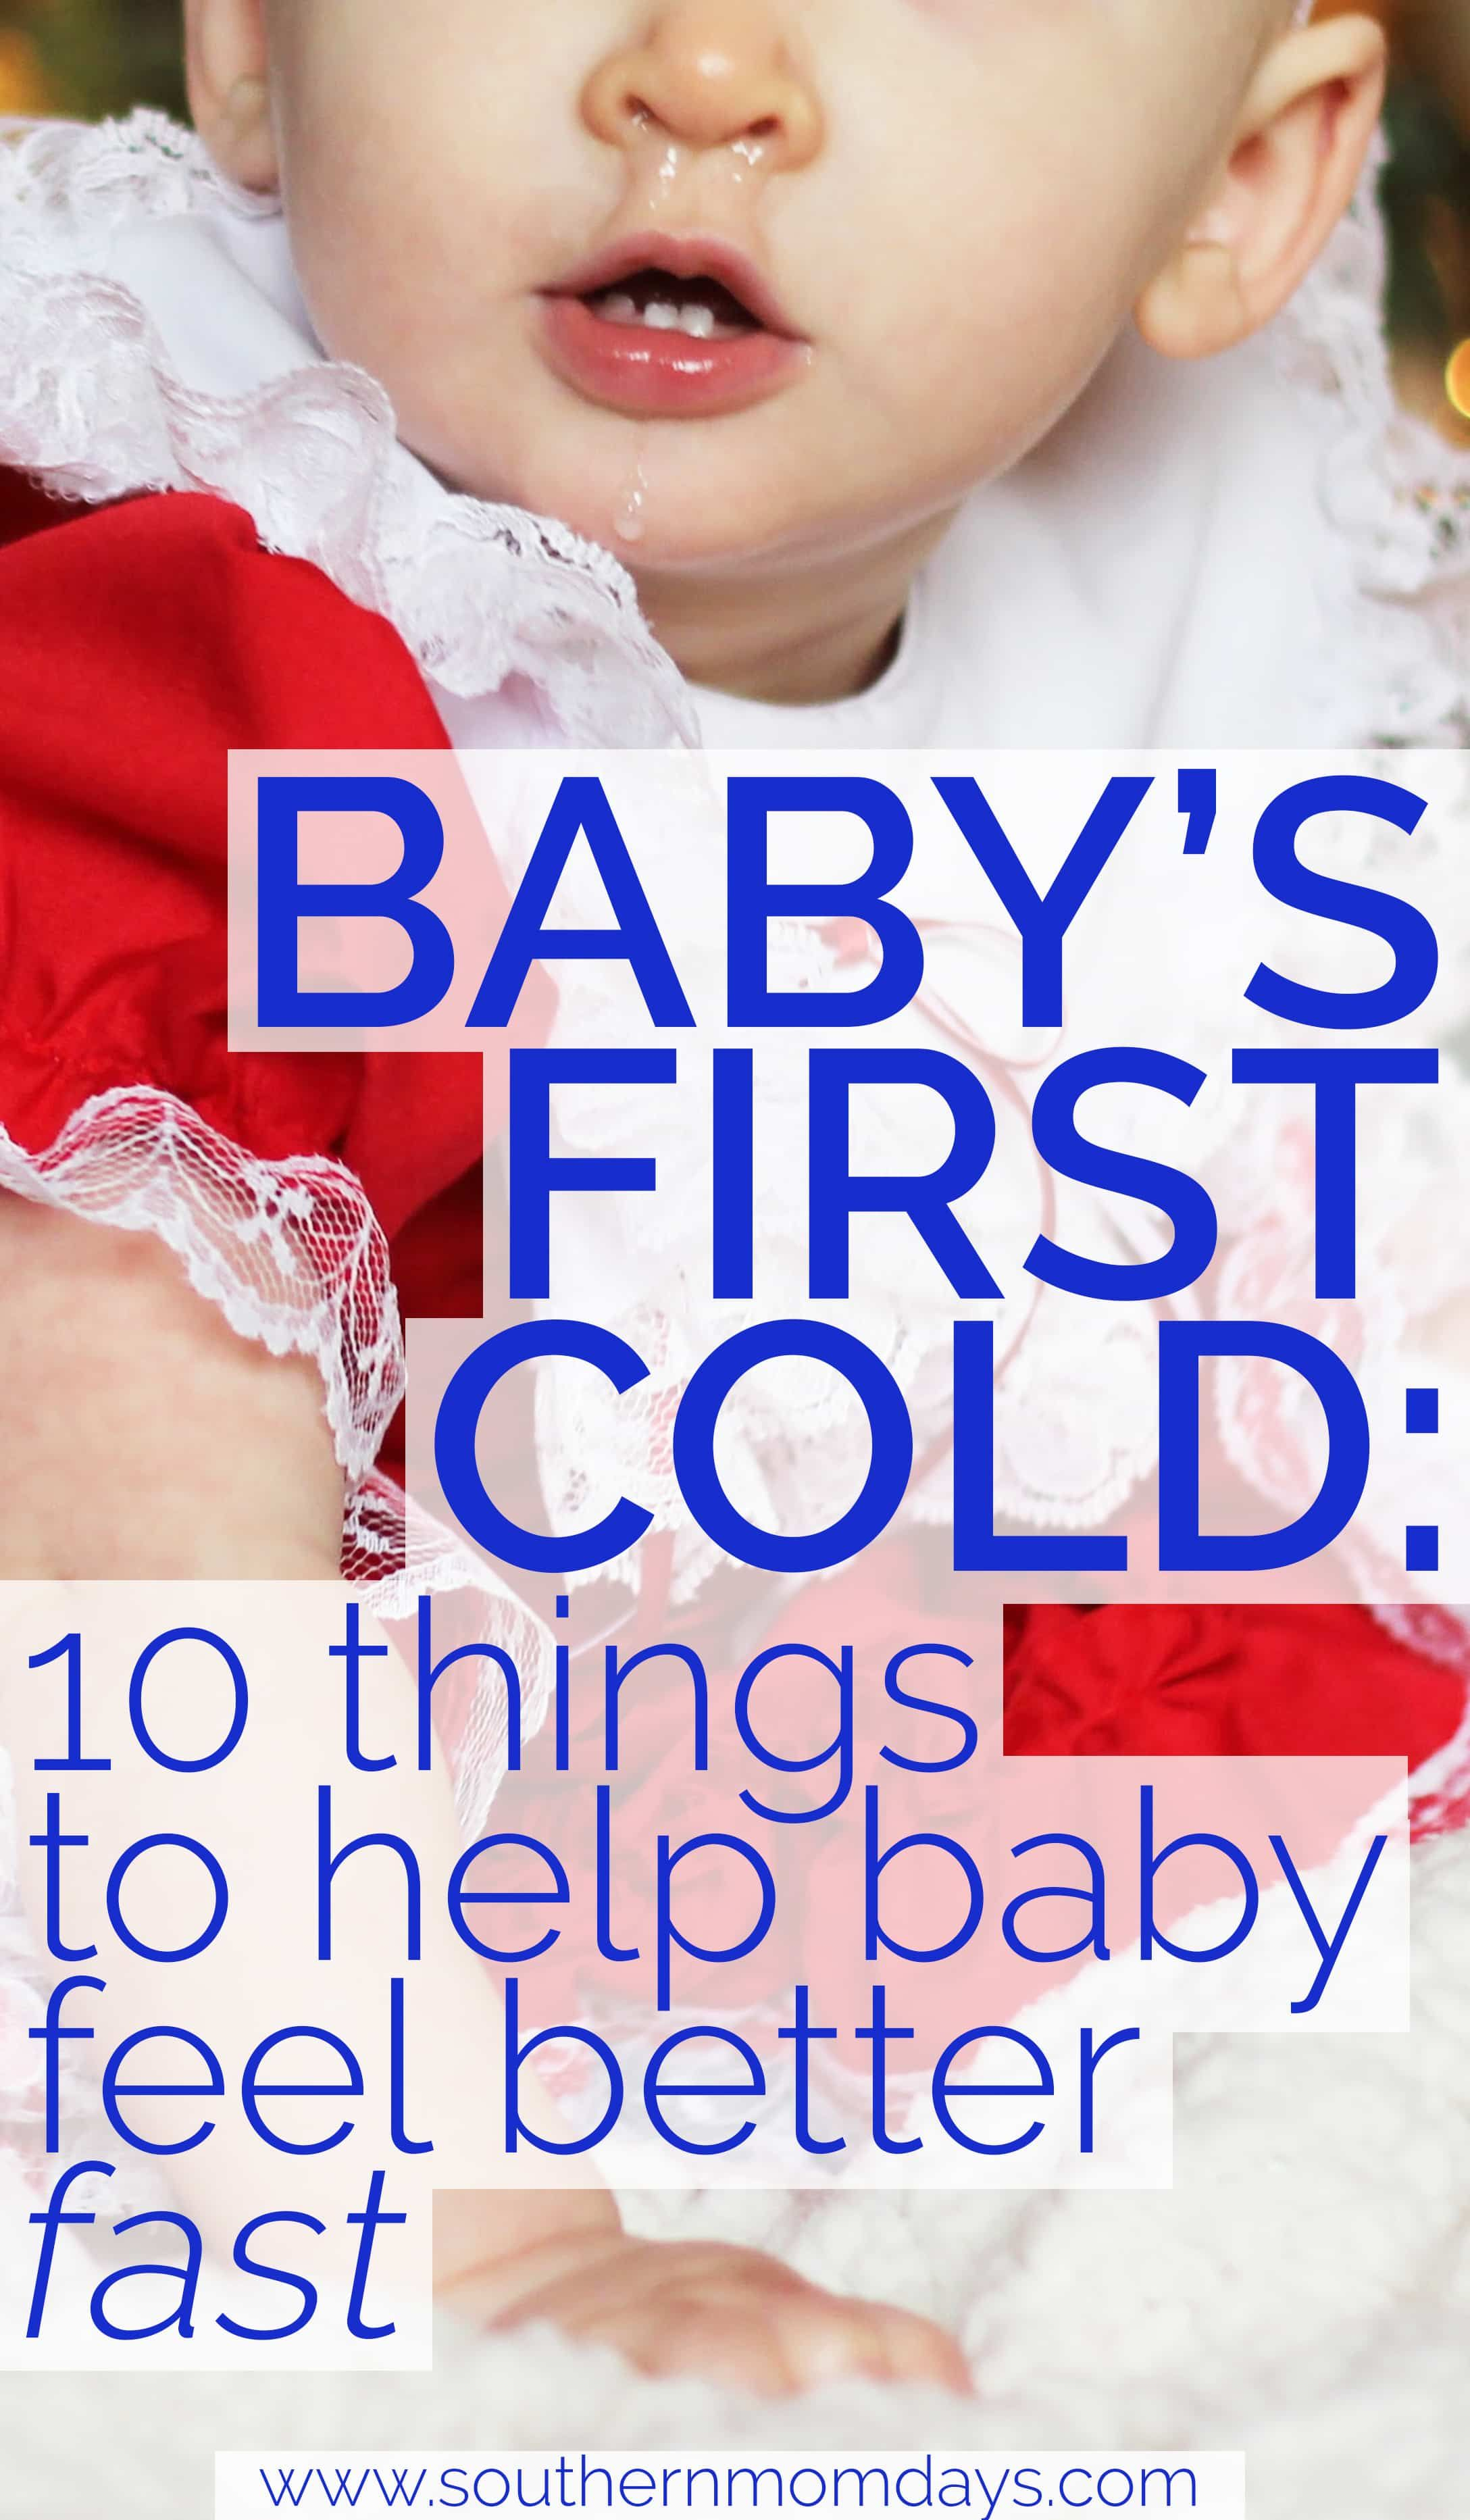 Baby S First Cold Kit How To Help Baby Feel Better Fast Sick Baby Remedies Sick Baby Baby Cold Remedies